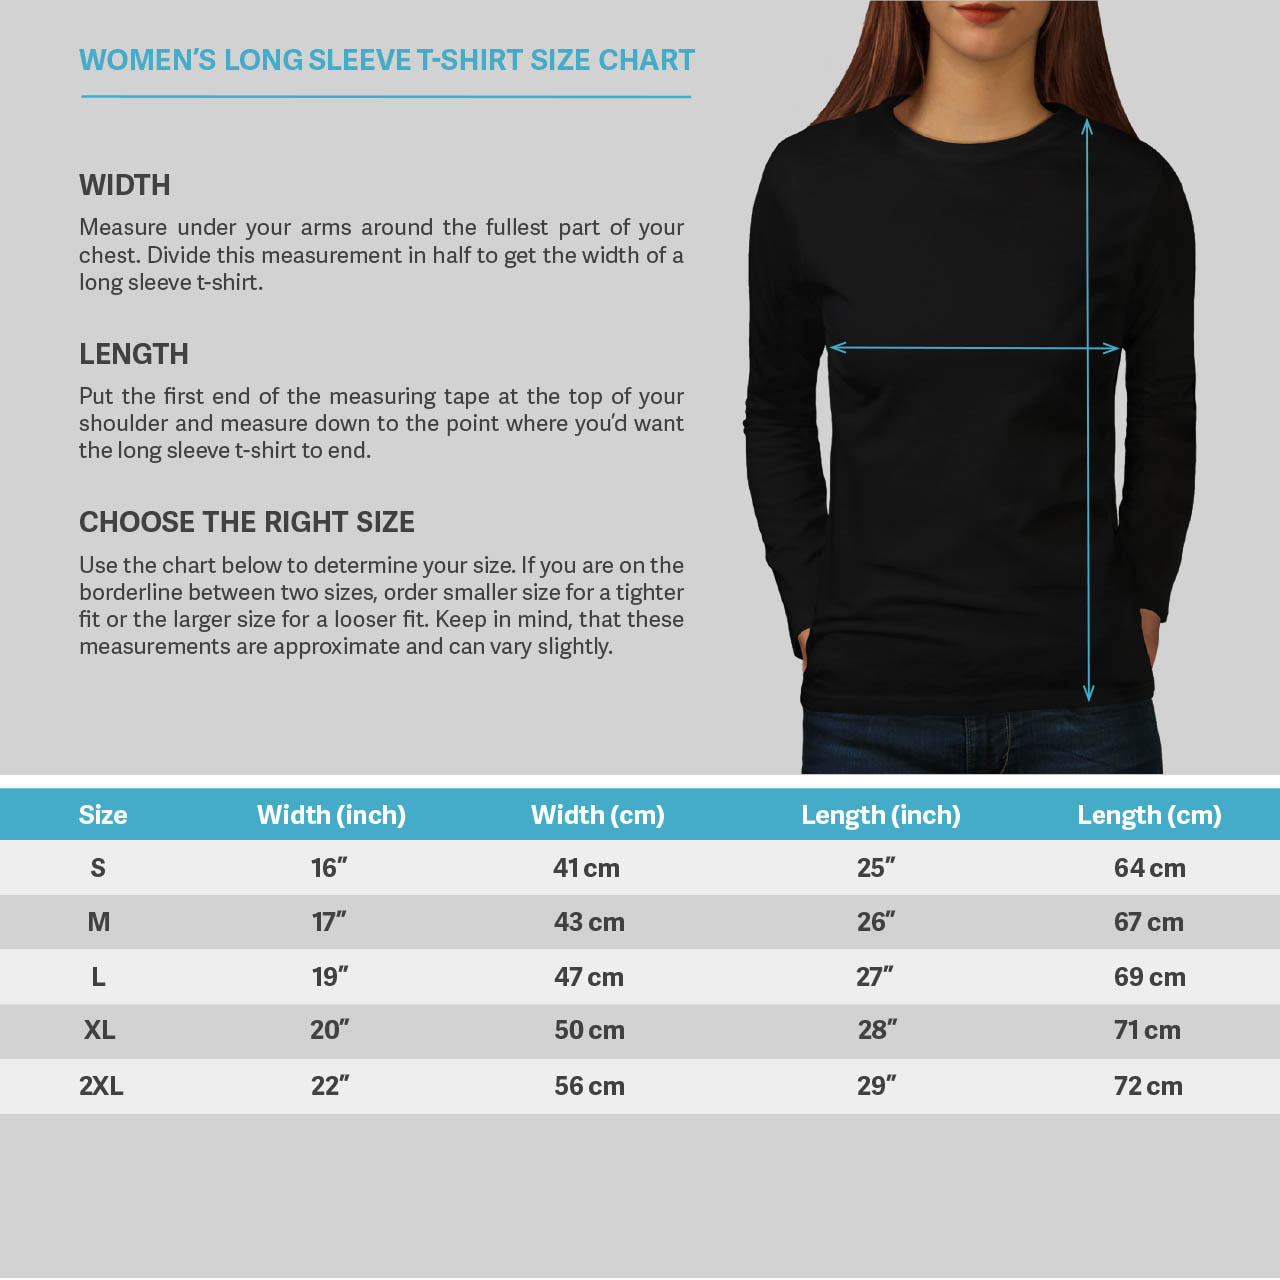 Virgo Tee Zodiac Sign Women Long Sleeve T-shirt image 5